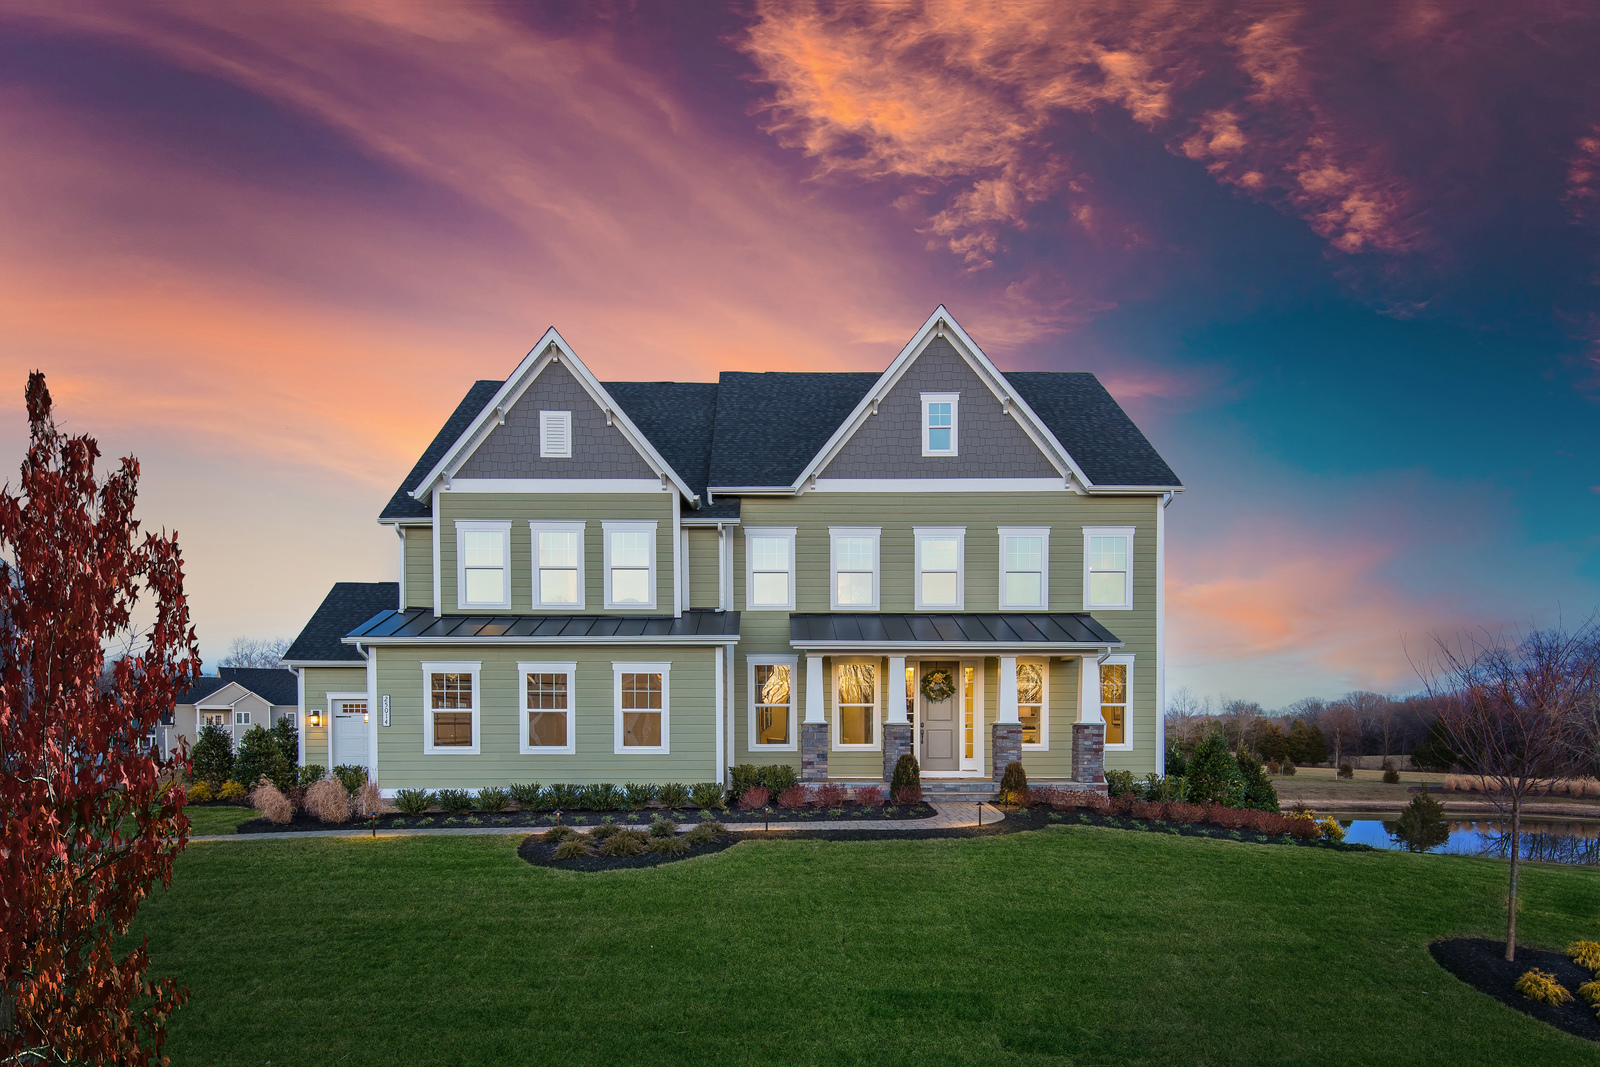 new stratford hall home model for sale nvhomes the stratford hall